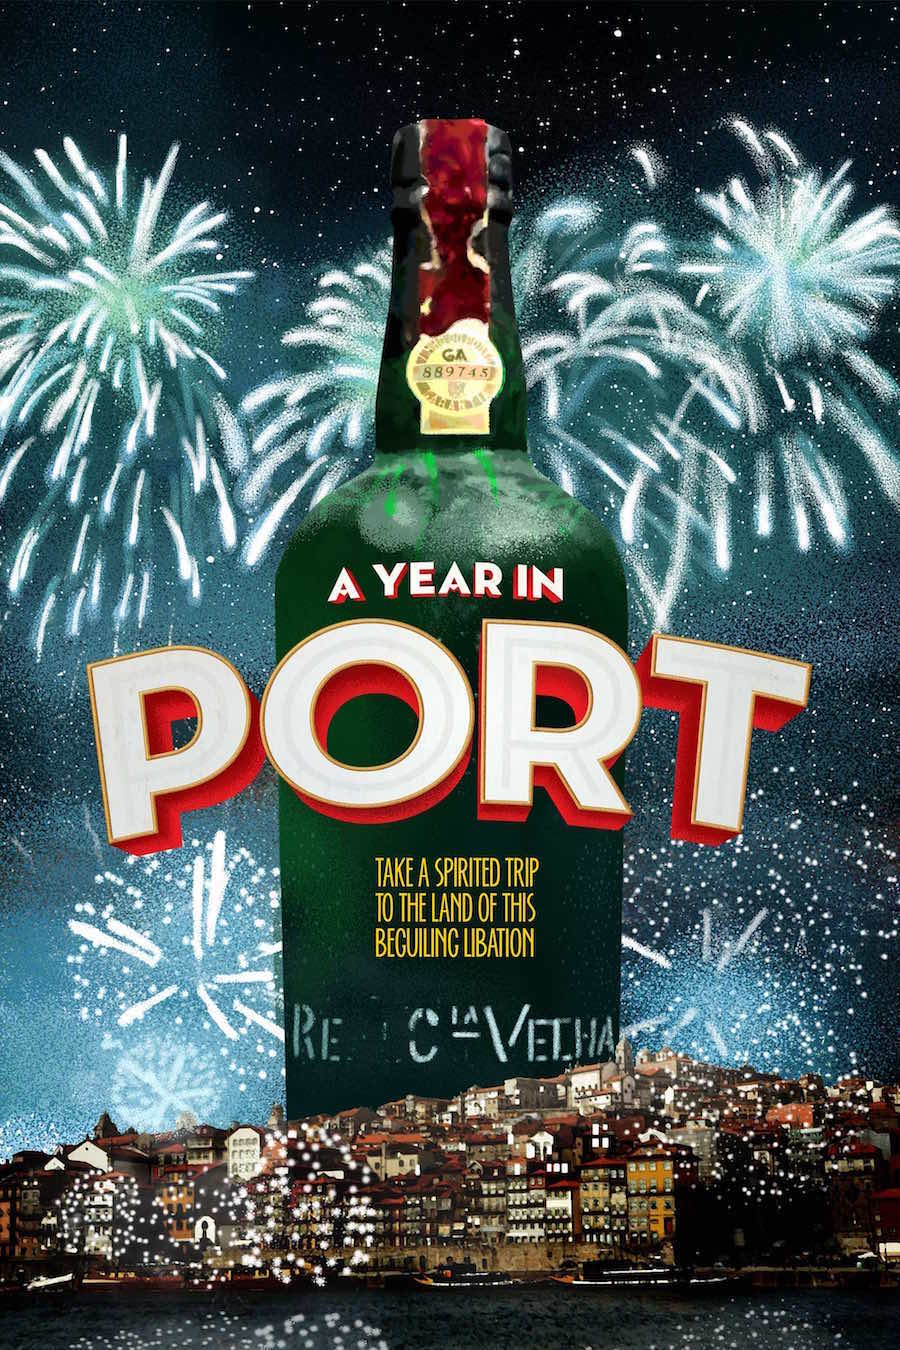 a_year_in_port_poster_web copy.jpg